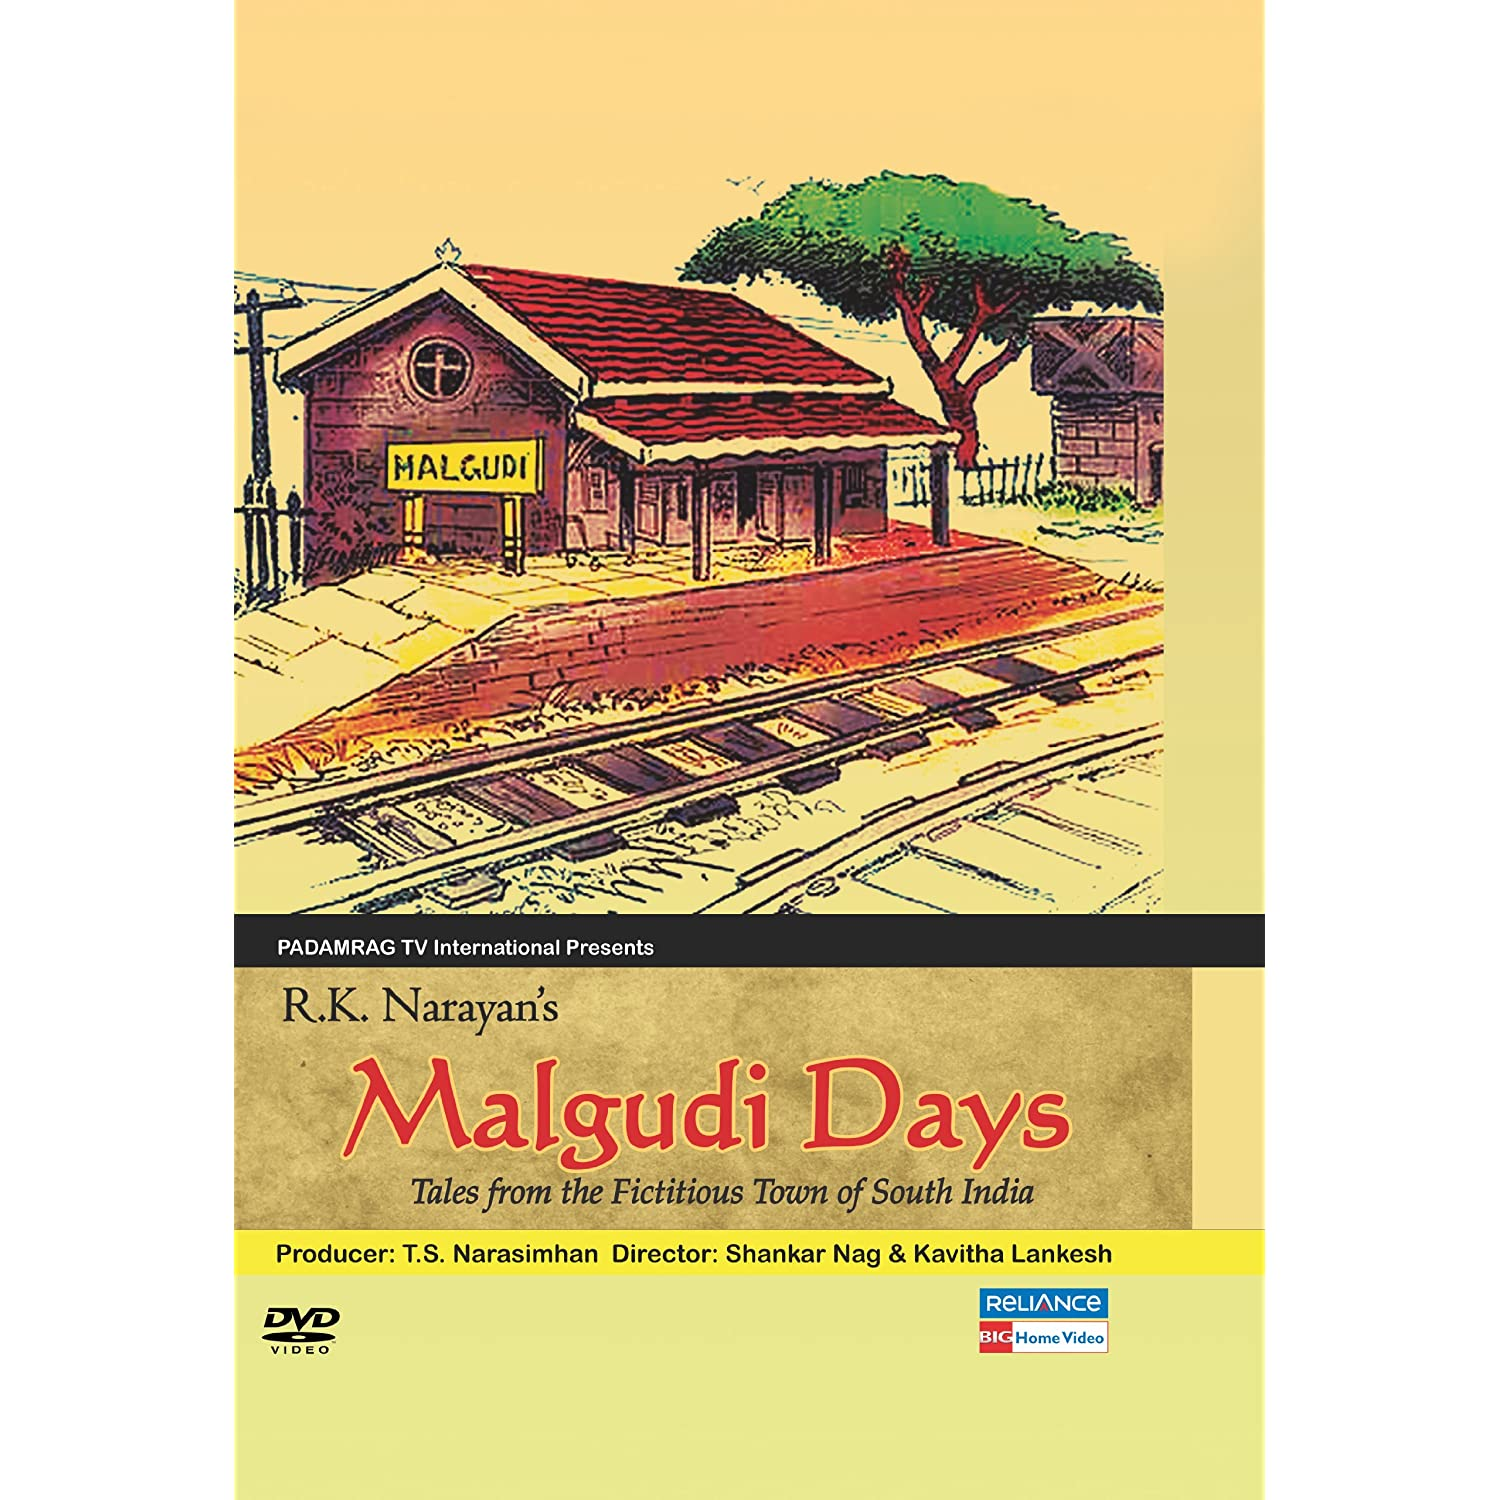 Malgudi Days Tv Series Free Download Torrent - dentalcrise